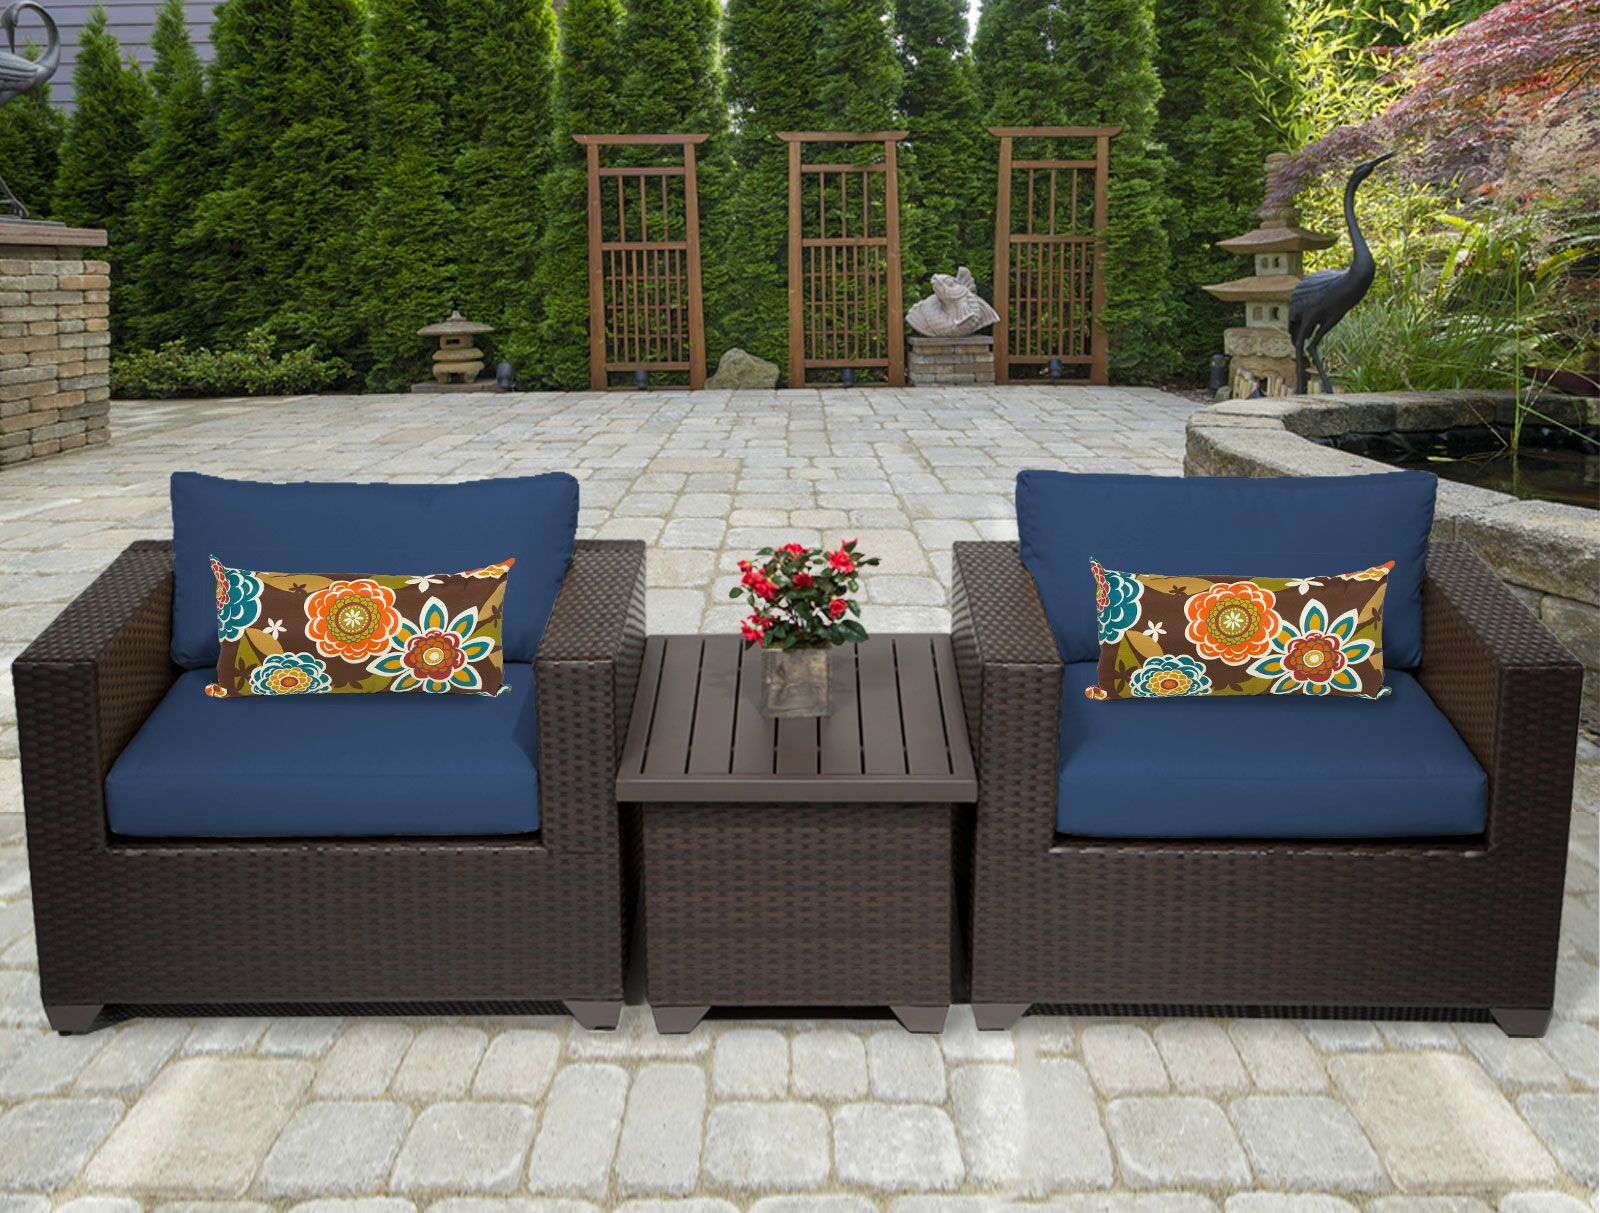 Belle 3 Piece Rattan Conversation Set with Cushions Fabric: Navy